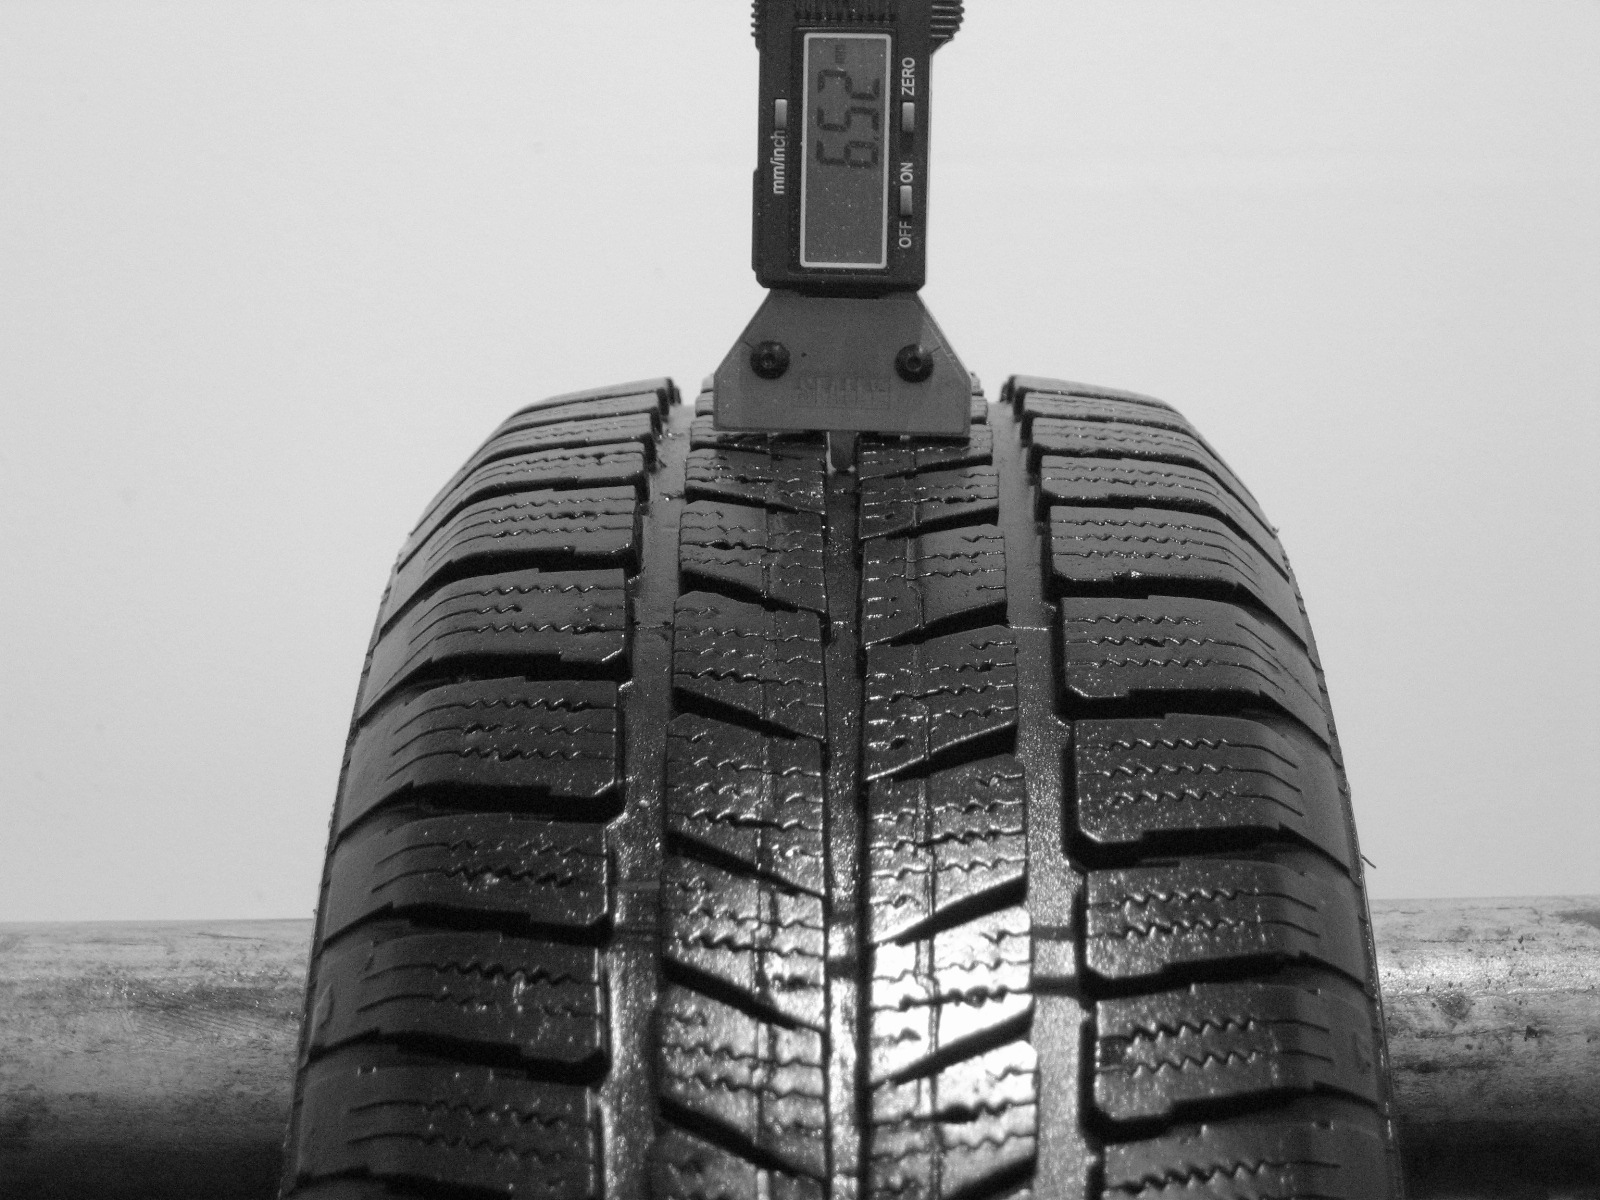 Použité-Pneu-Bazar - 165/65 R14 BARUM POLARIS OR60-kusovka-rezerva 3mm